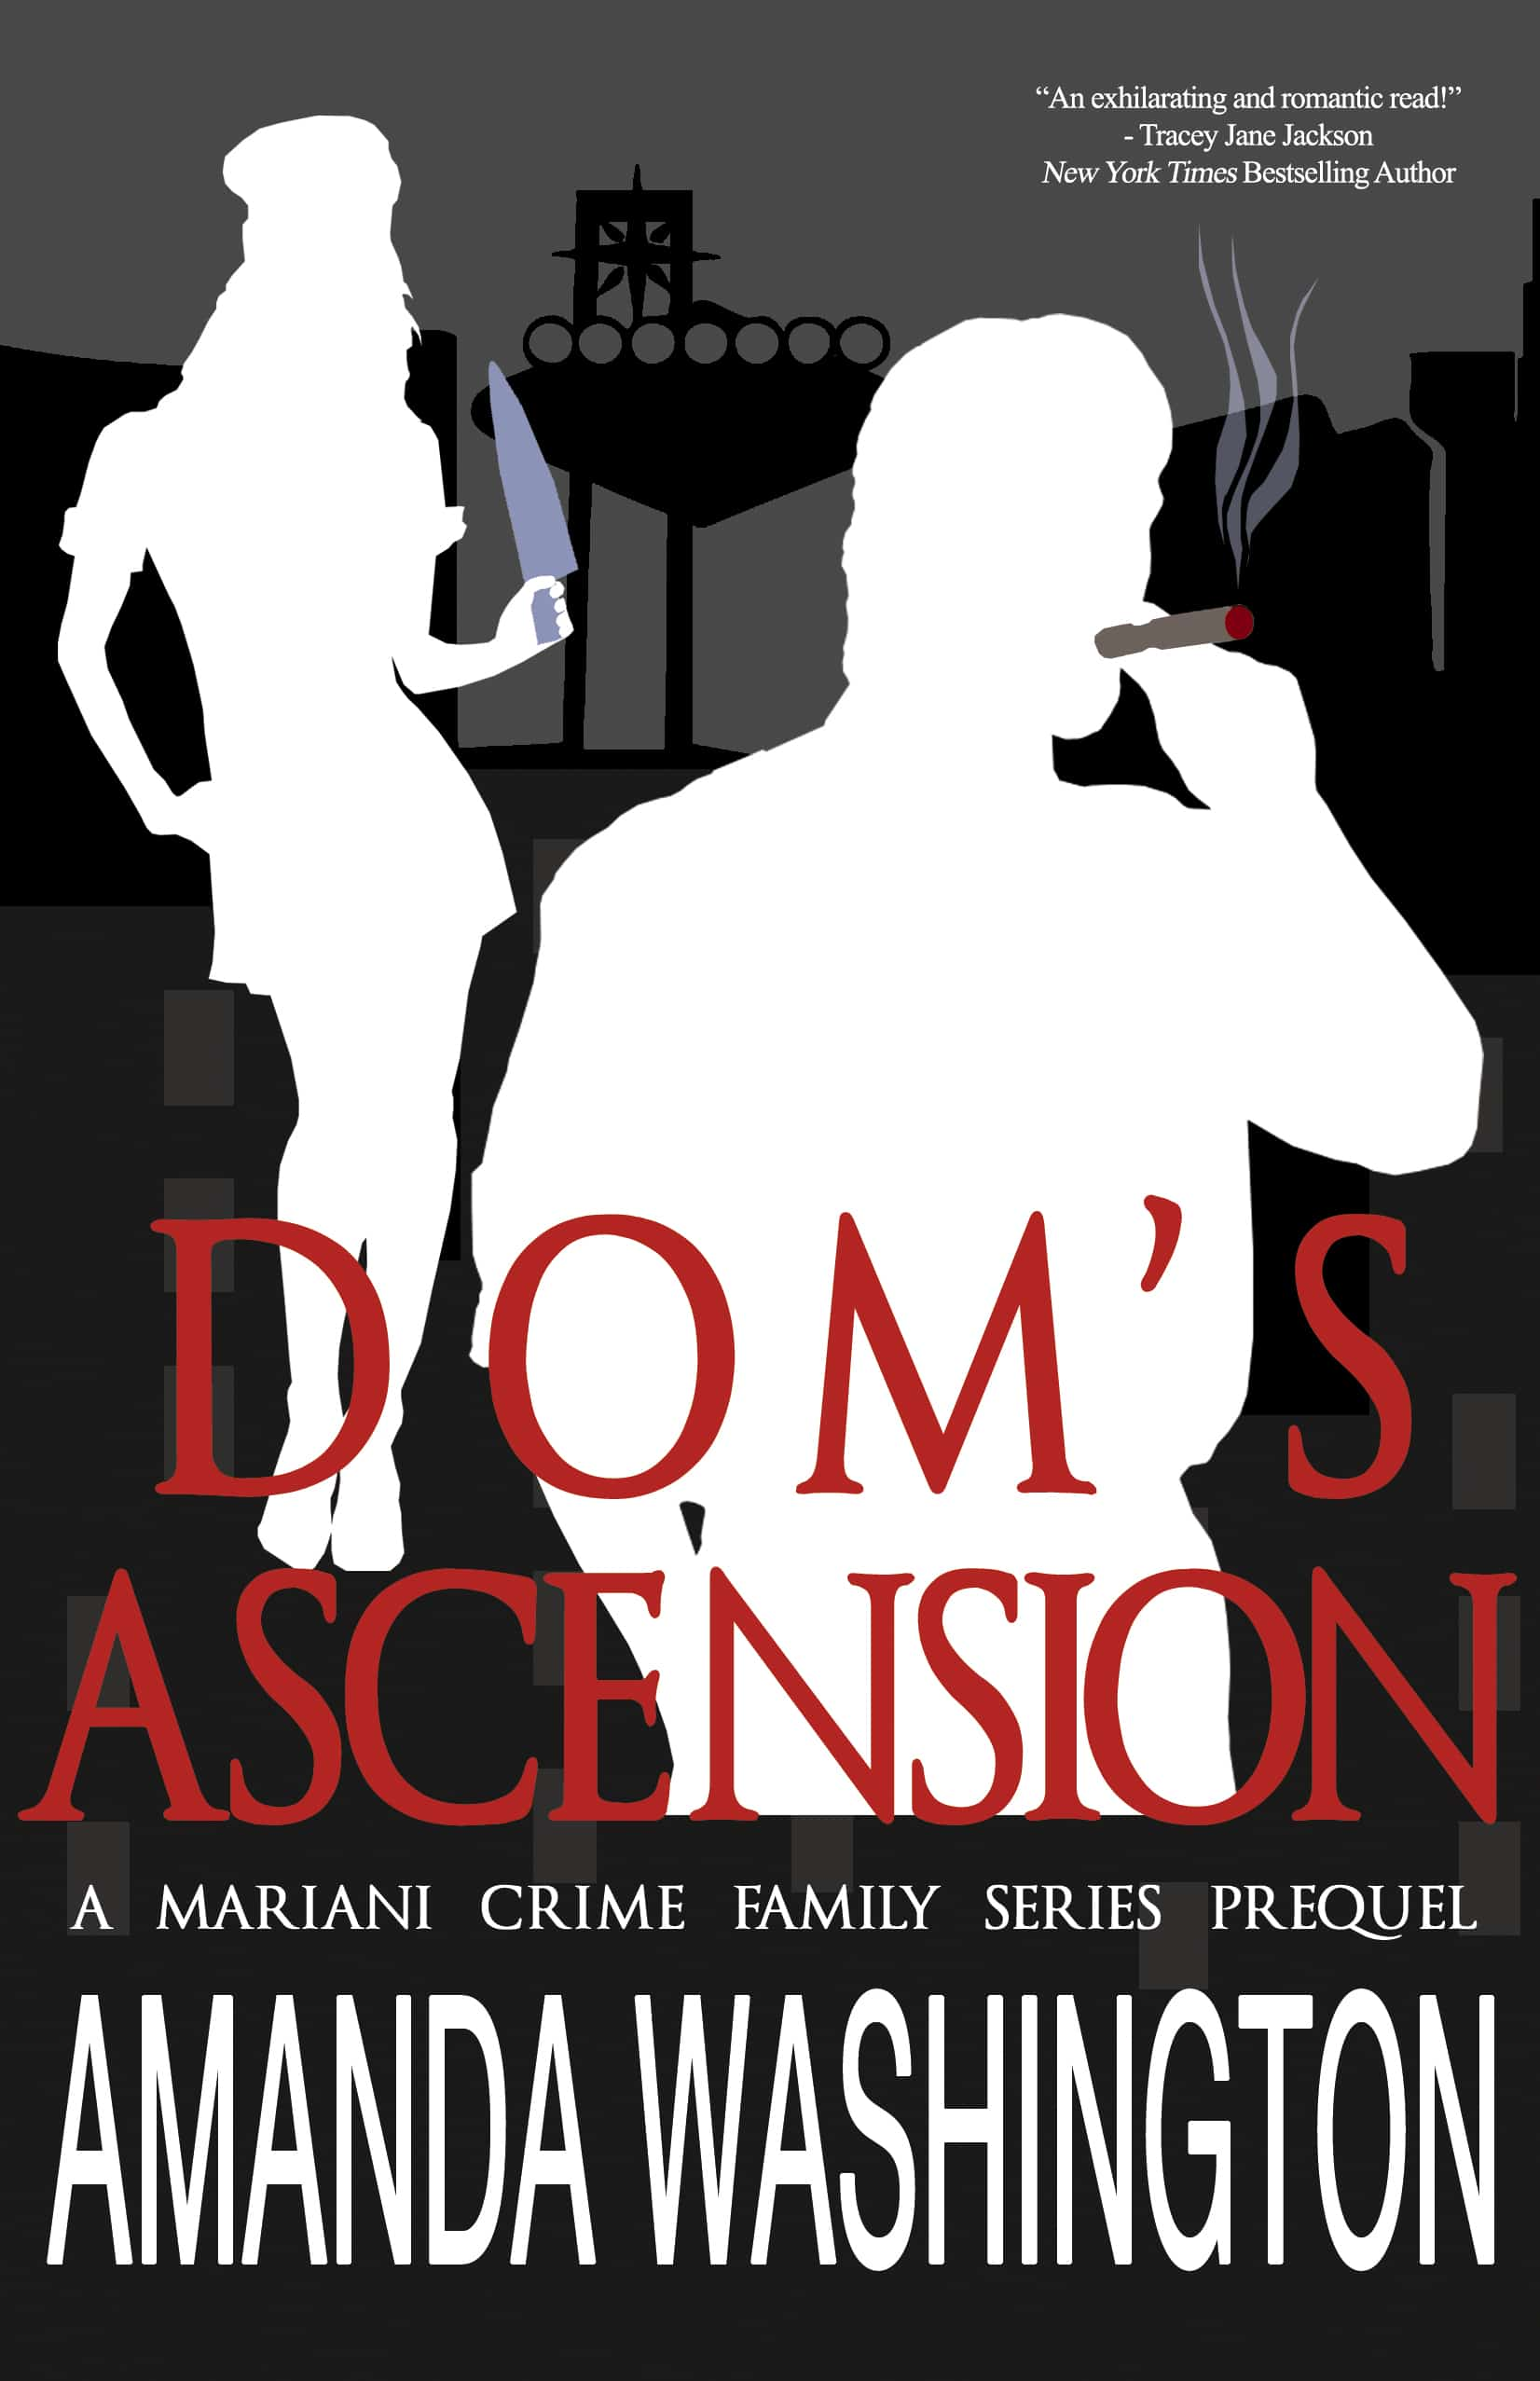 Dom's Ascension by Amanda Washington MBR My Book Ratings content-rated book